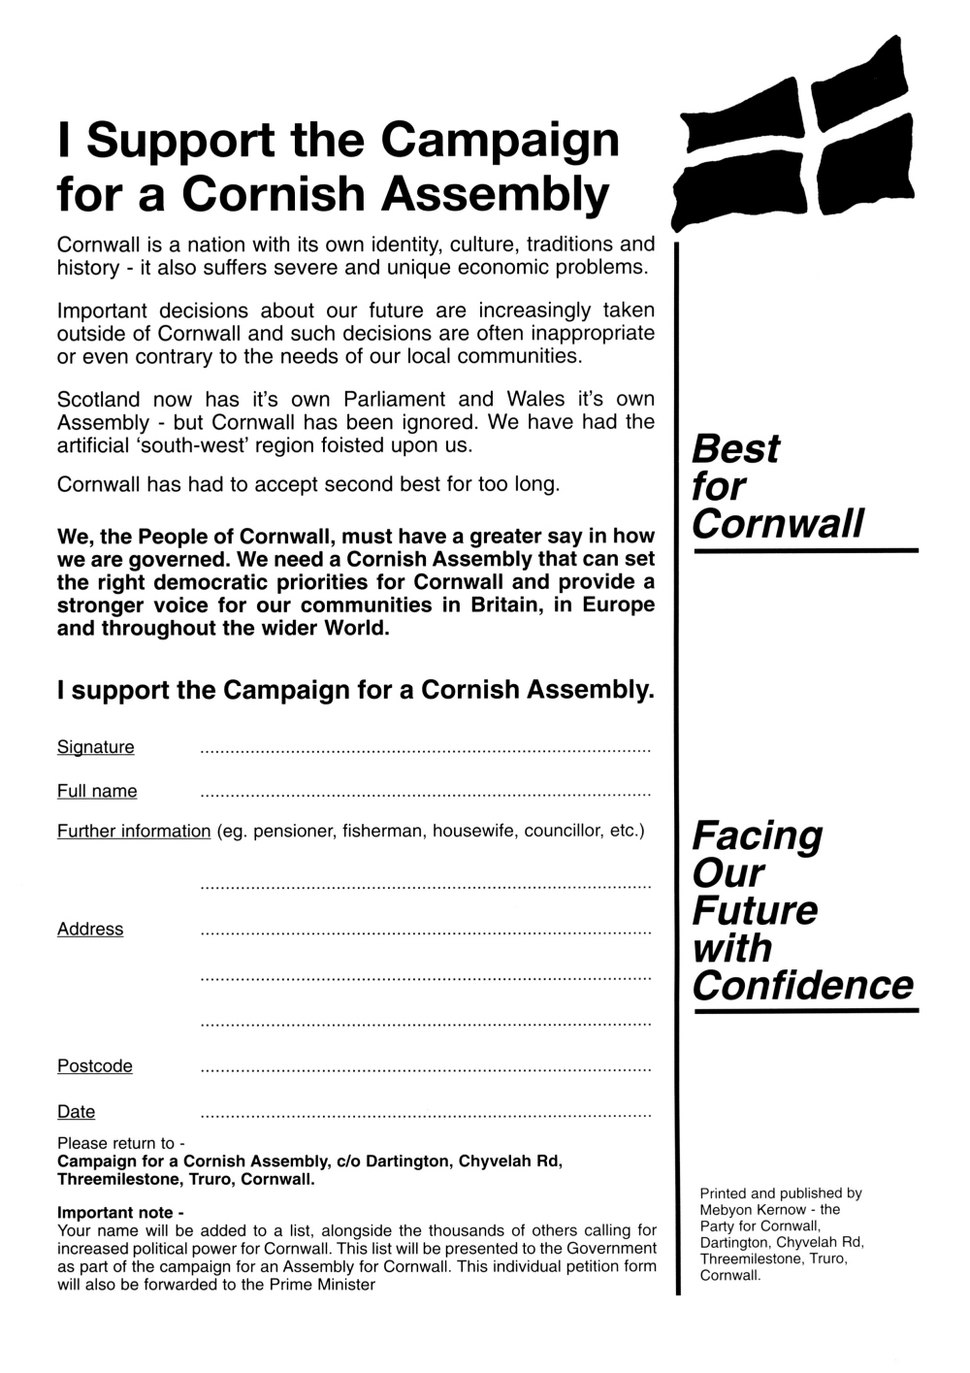 1. Declaration for a Cornish Assembly